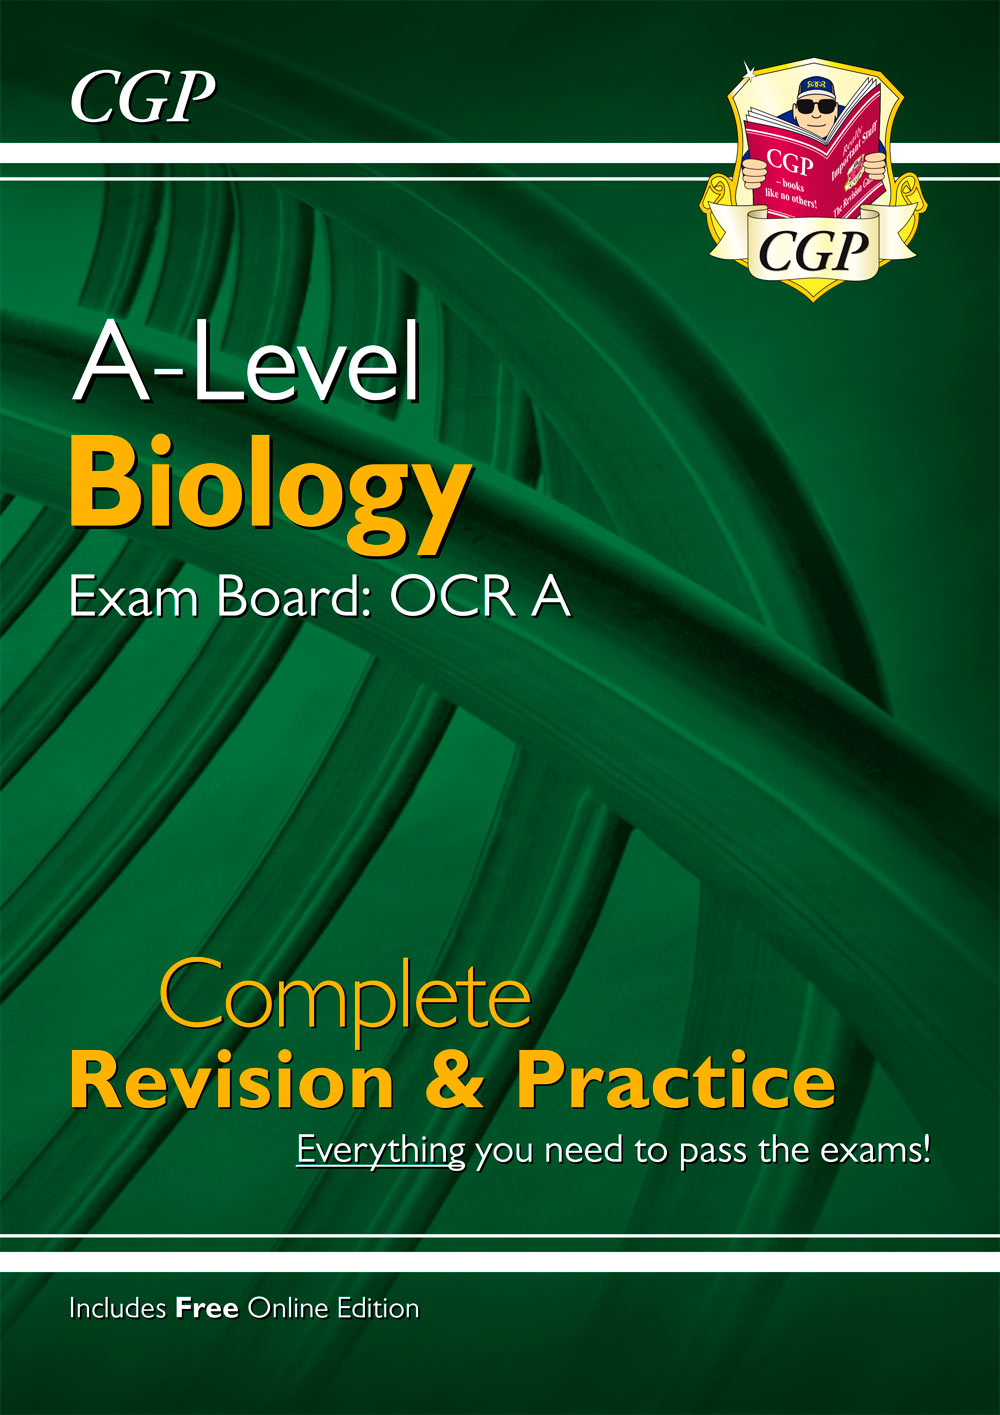 BRAR73 - New A-Level Biology for 2018: OCR A Year 1 & 2 Complete Revision & Practice with Online Edi